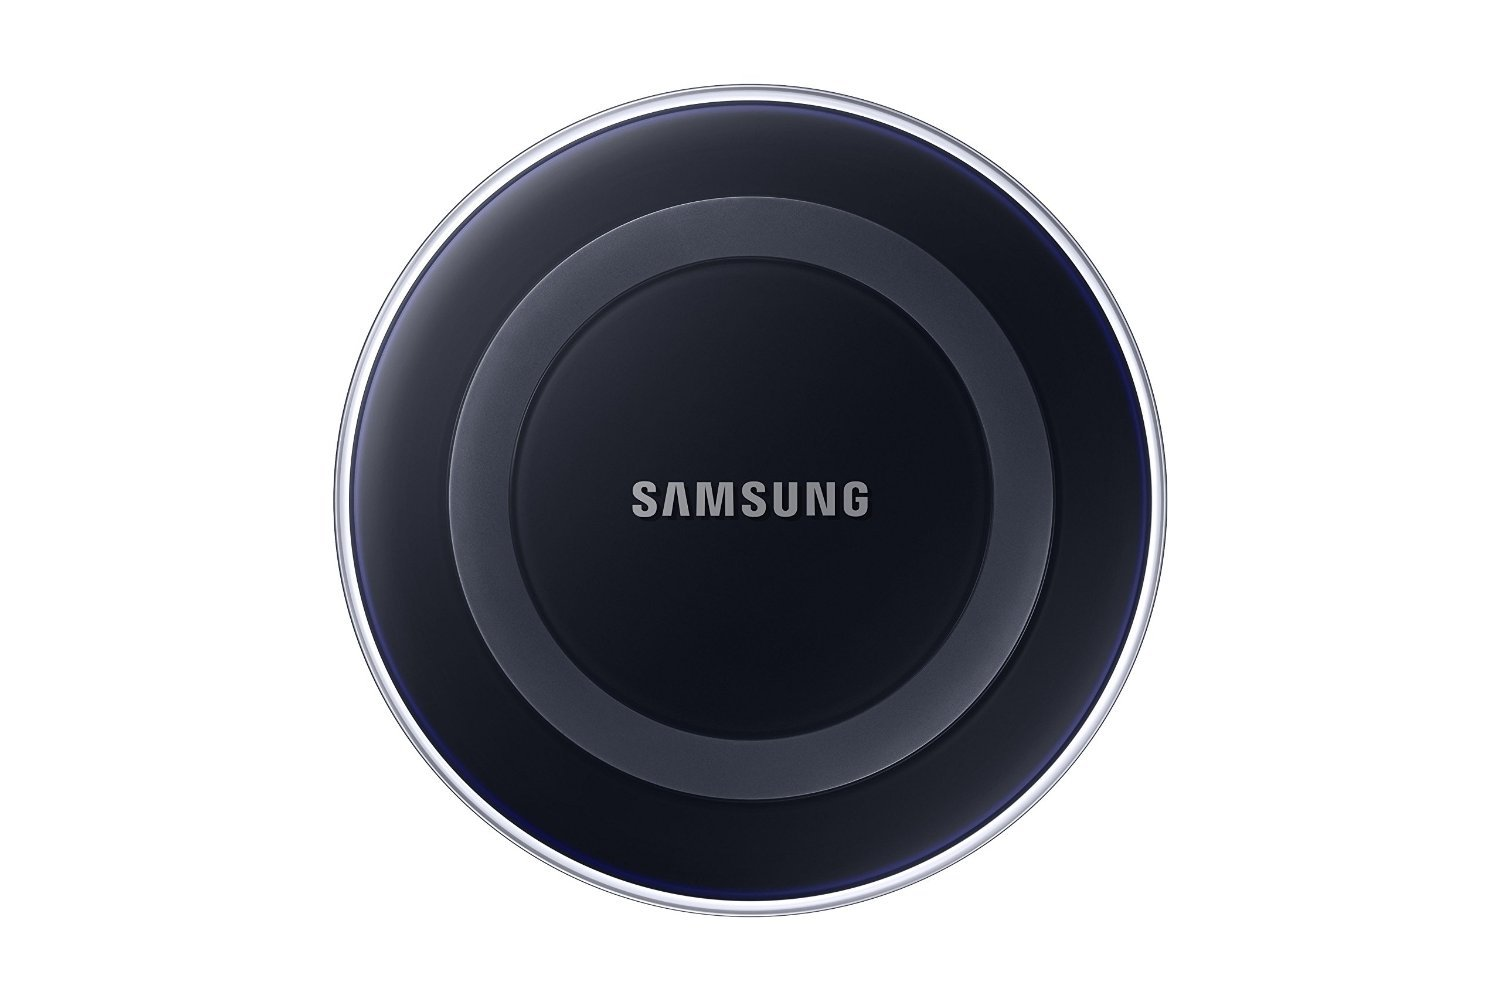 Samsung Qi Certified Wireless Charging Pad with 2A Wall Charger- Supports wireless charging on Qi compatible smartphones including the Samsung Galaxy S8, S8+, Note 8, Apple iPhone 8, iPhone 8 Plus, and iPhone X (US Version) - Black Sapphire by Samsung